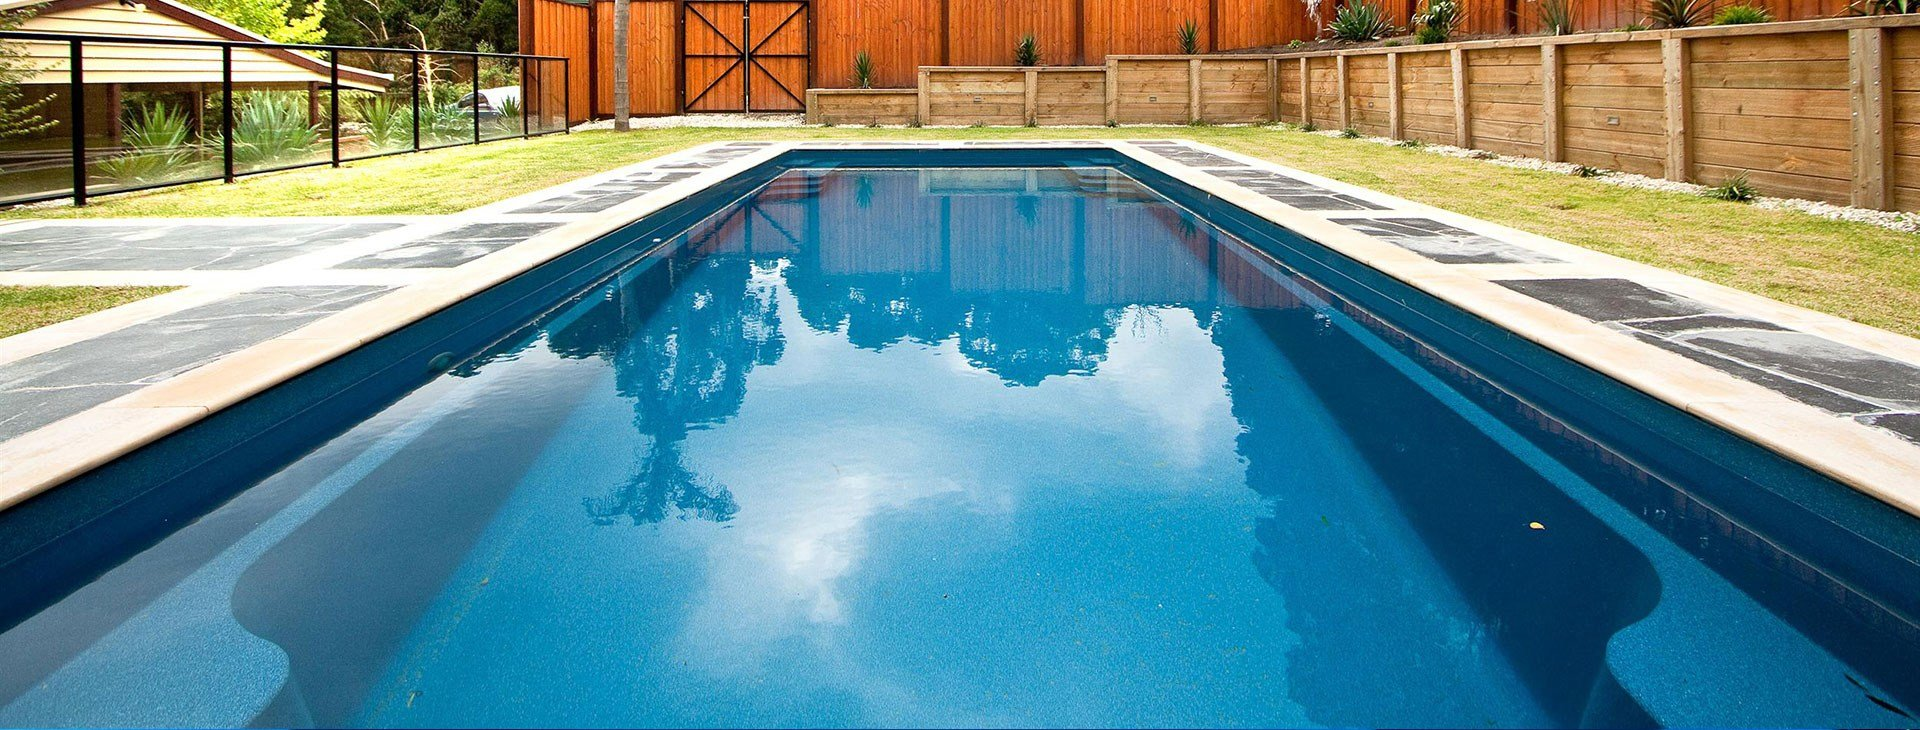 Compass Pools Australia Pool Builders South Australia Installation 4